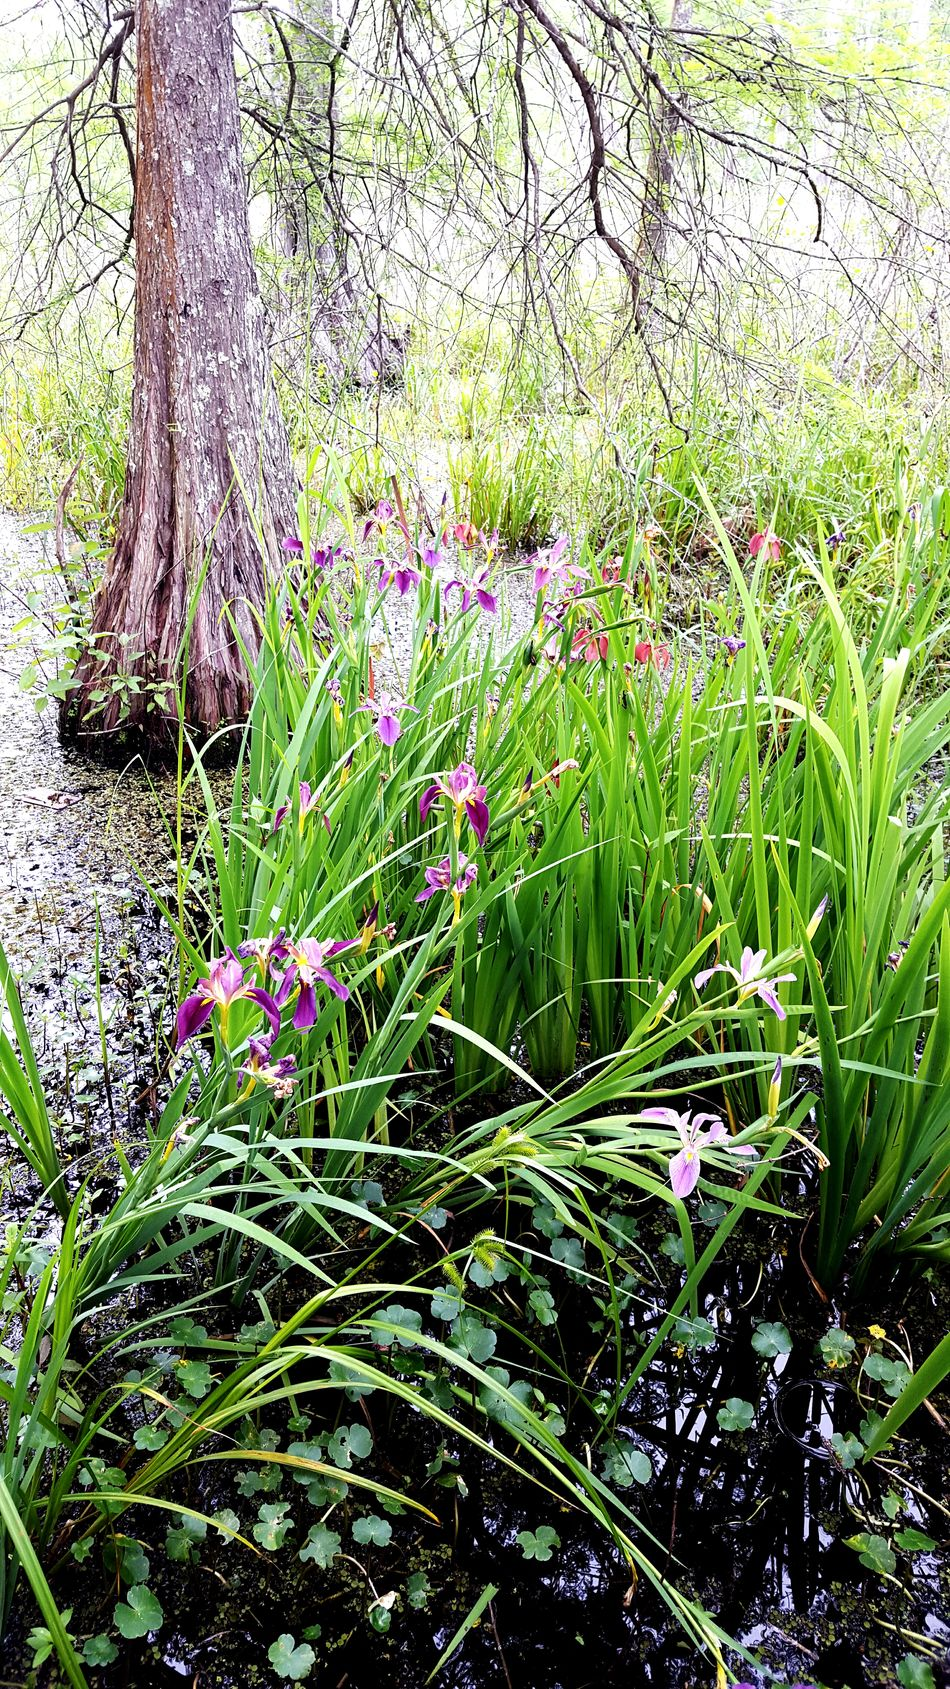 Scene from a swamp Spring Into Spring Flower Blossom No People South Louisiana Samsung Galaxy S6 Edge Greenery Daylight Botany Trees Beauty In Nature Swamp Swamp Photos Swamplands Swamp Flower Swamp Walk